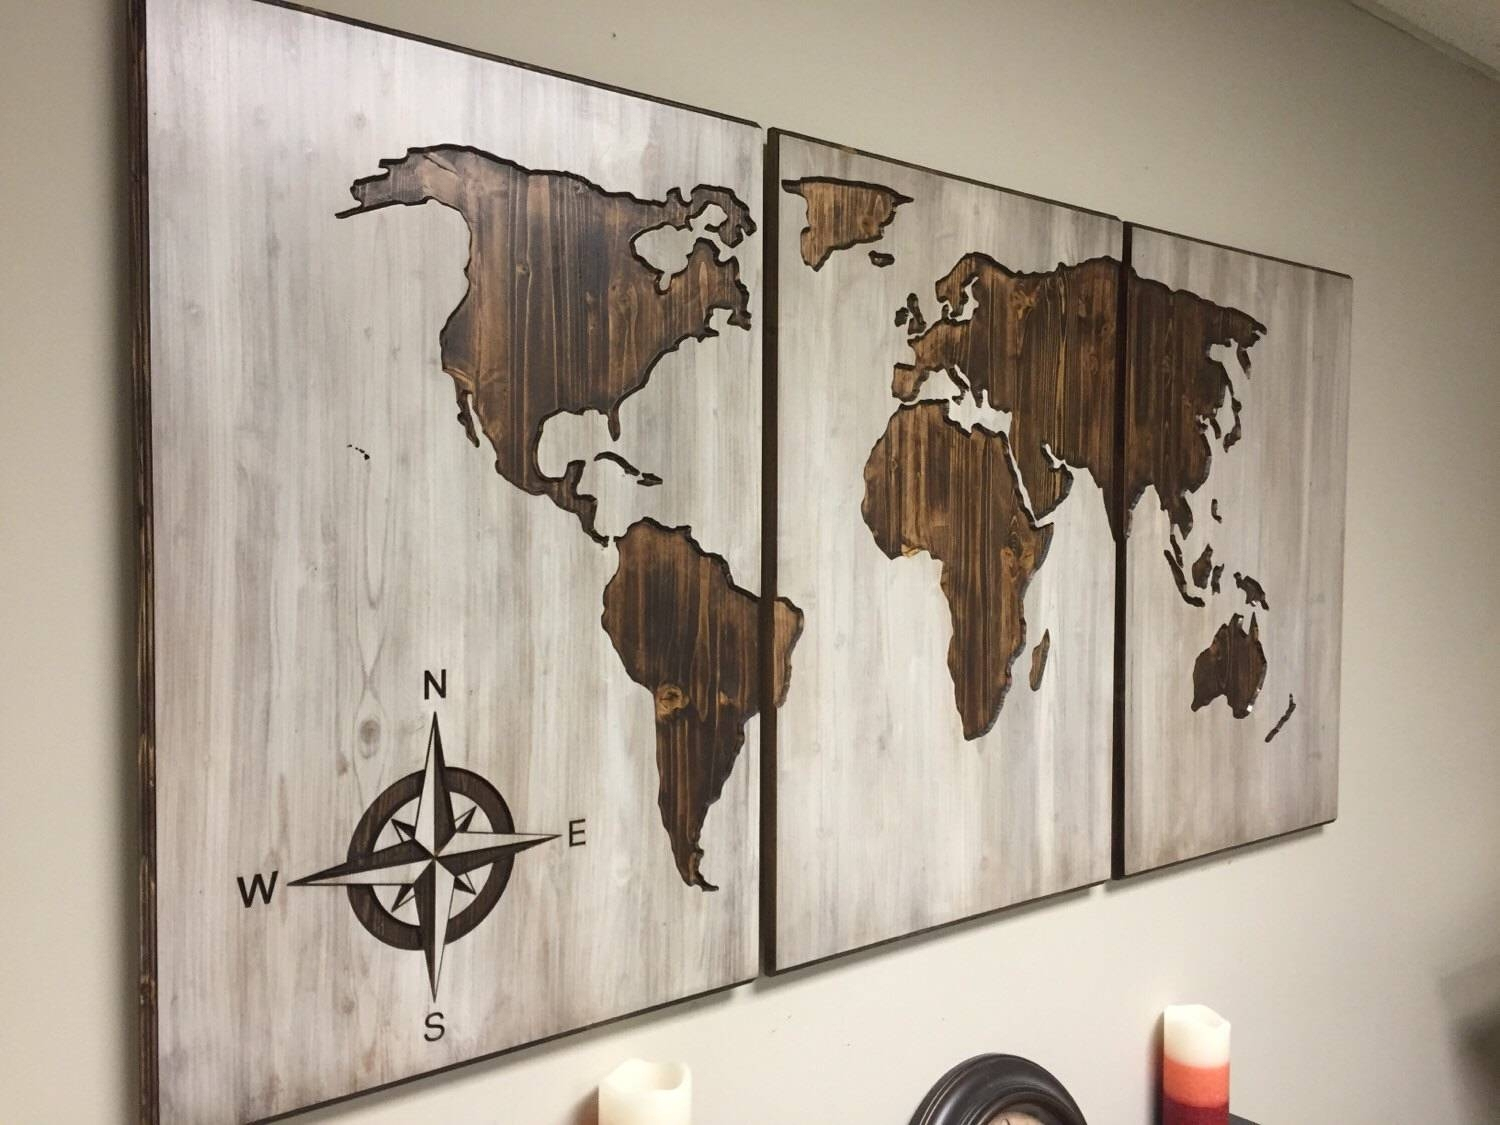 20 Best Collection Of Texas Map Wall Art - Texas Map Wall Decor